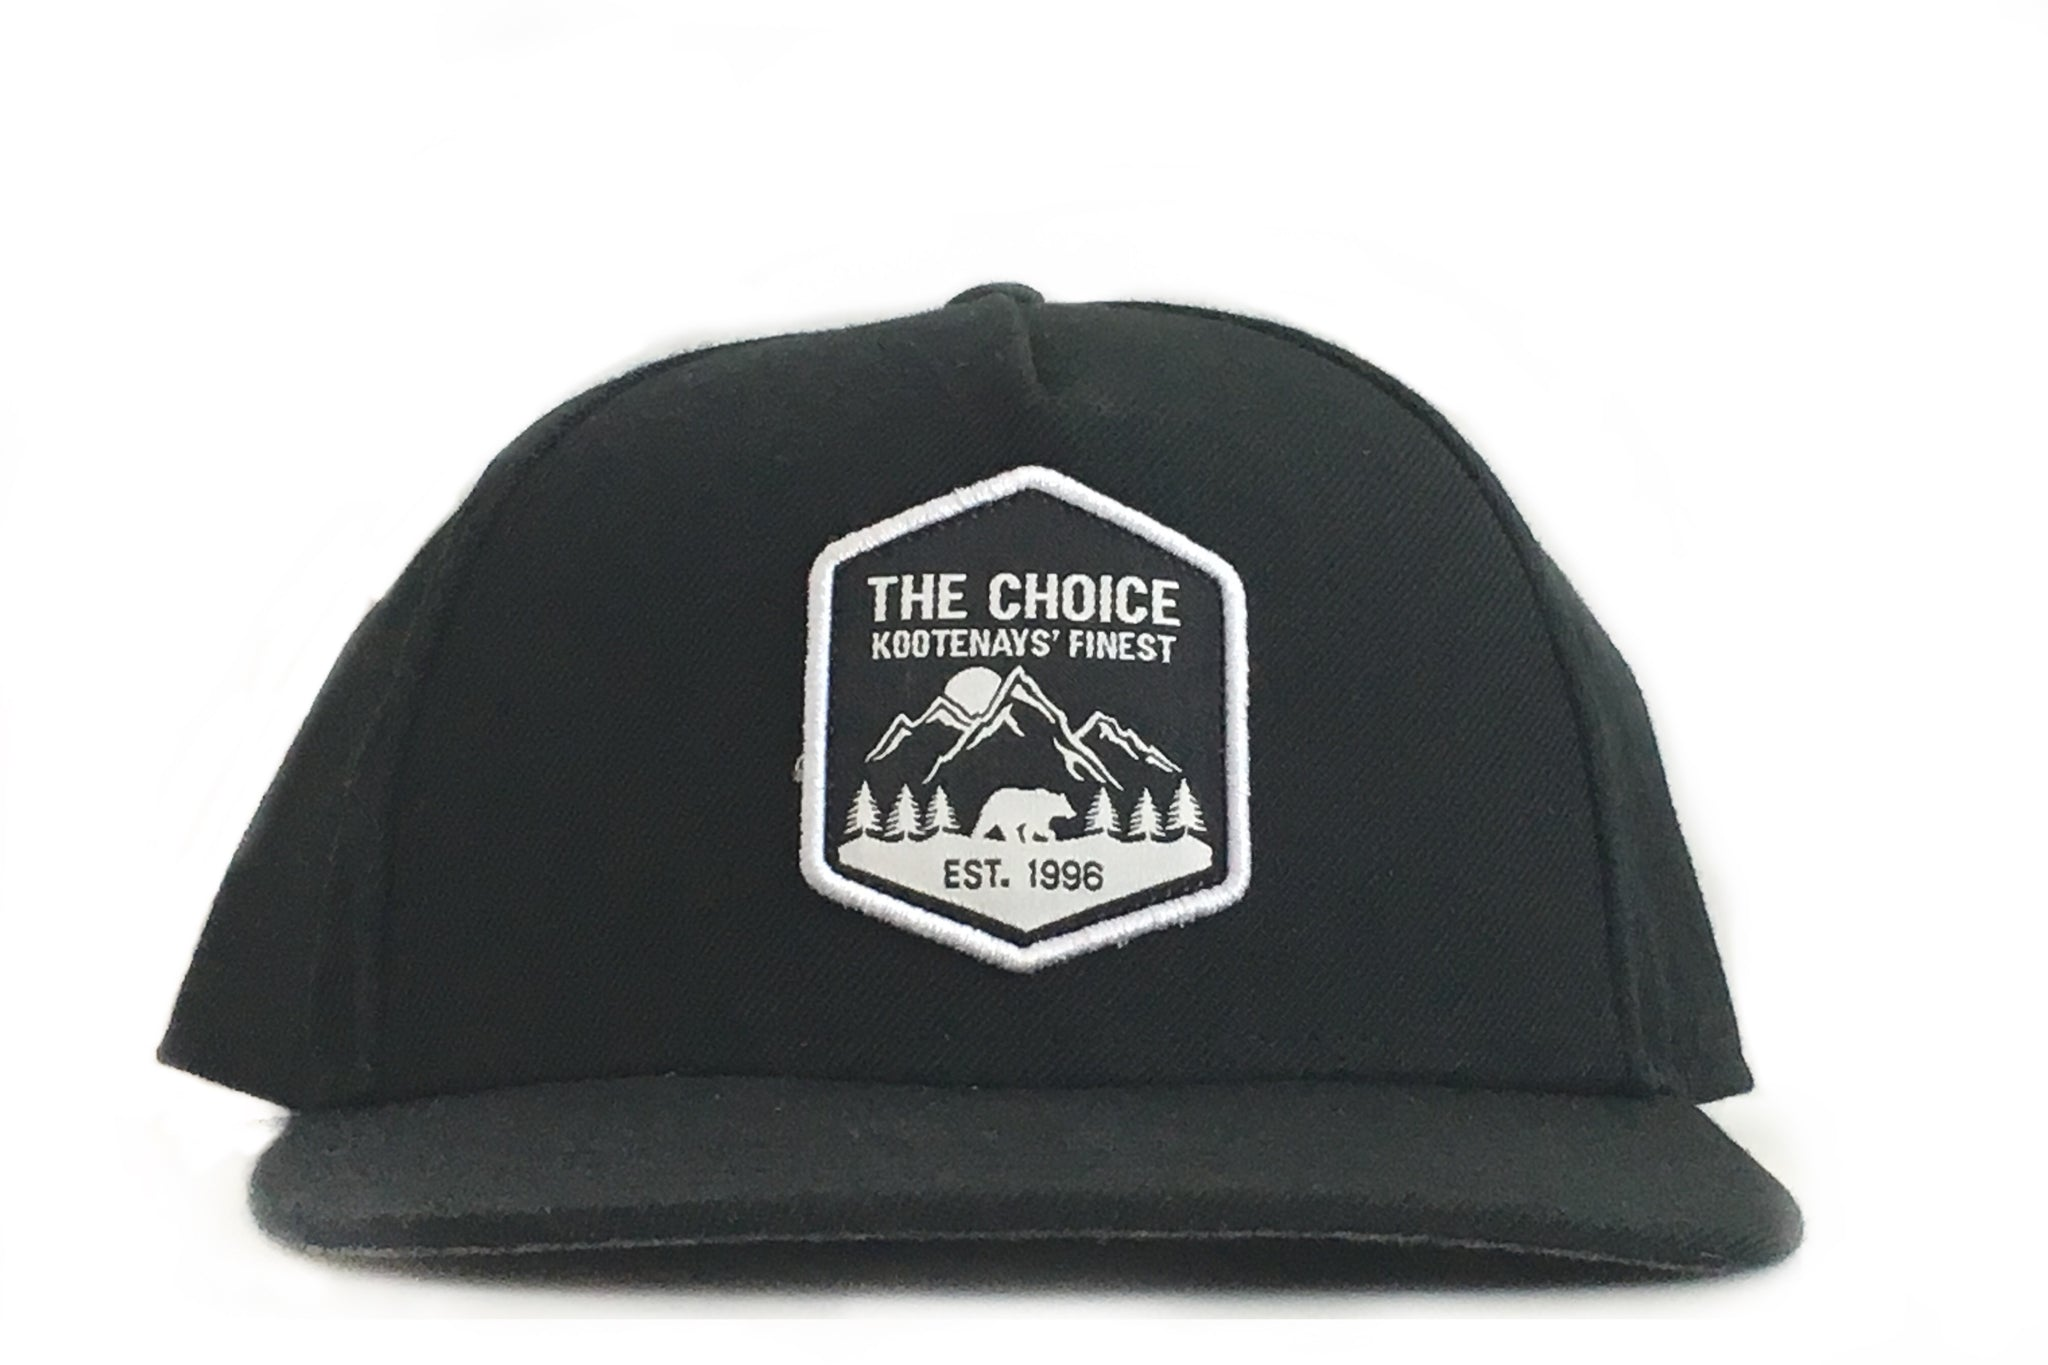 The Choice Kootenays' Finest Hat Black/Tropical